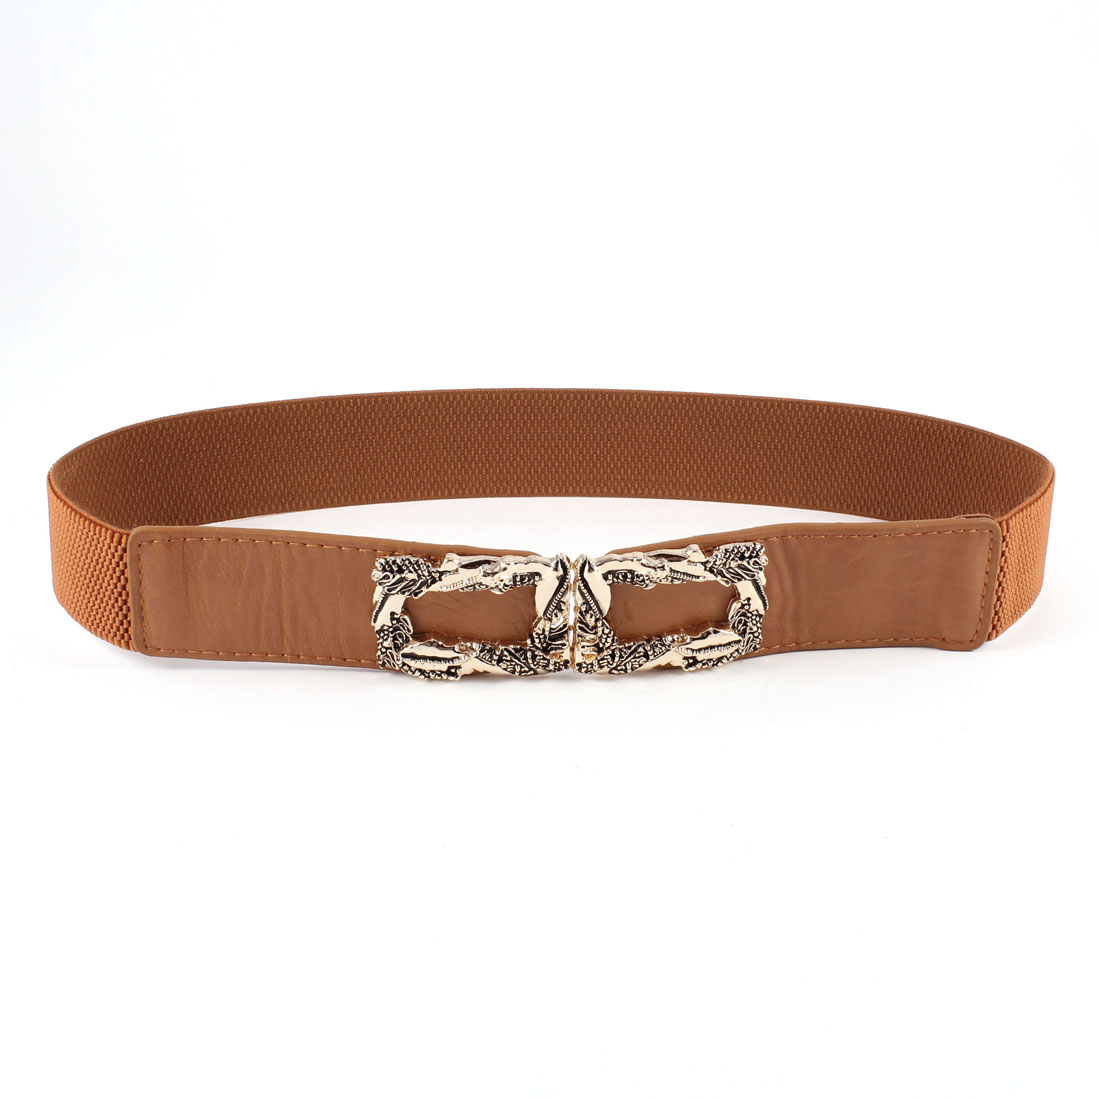 Ladies Metal Snake Decor Interlock Buckle Elastic Cinch Waist Belt Brown